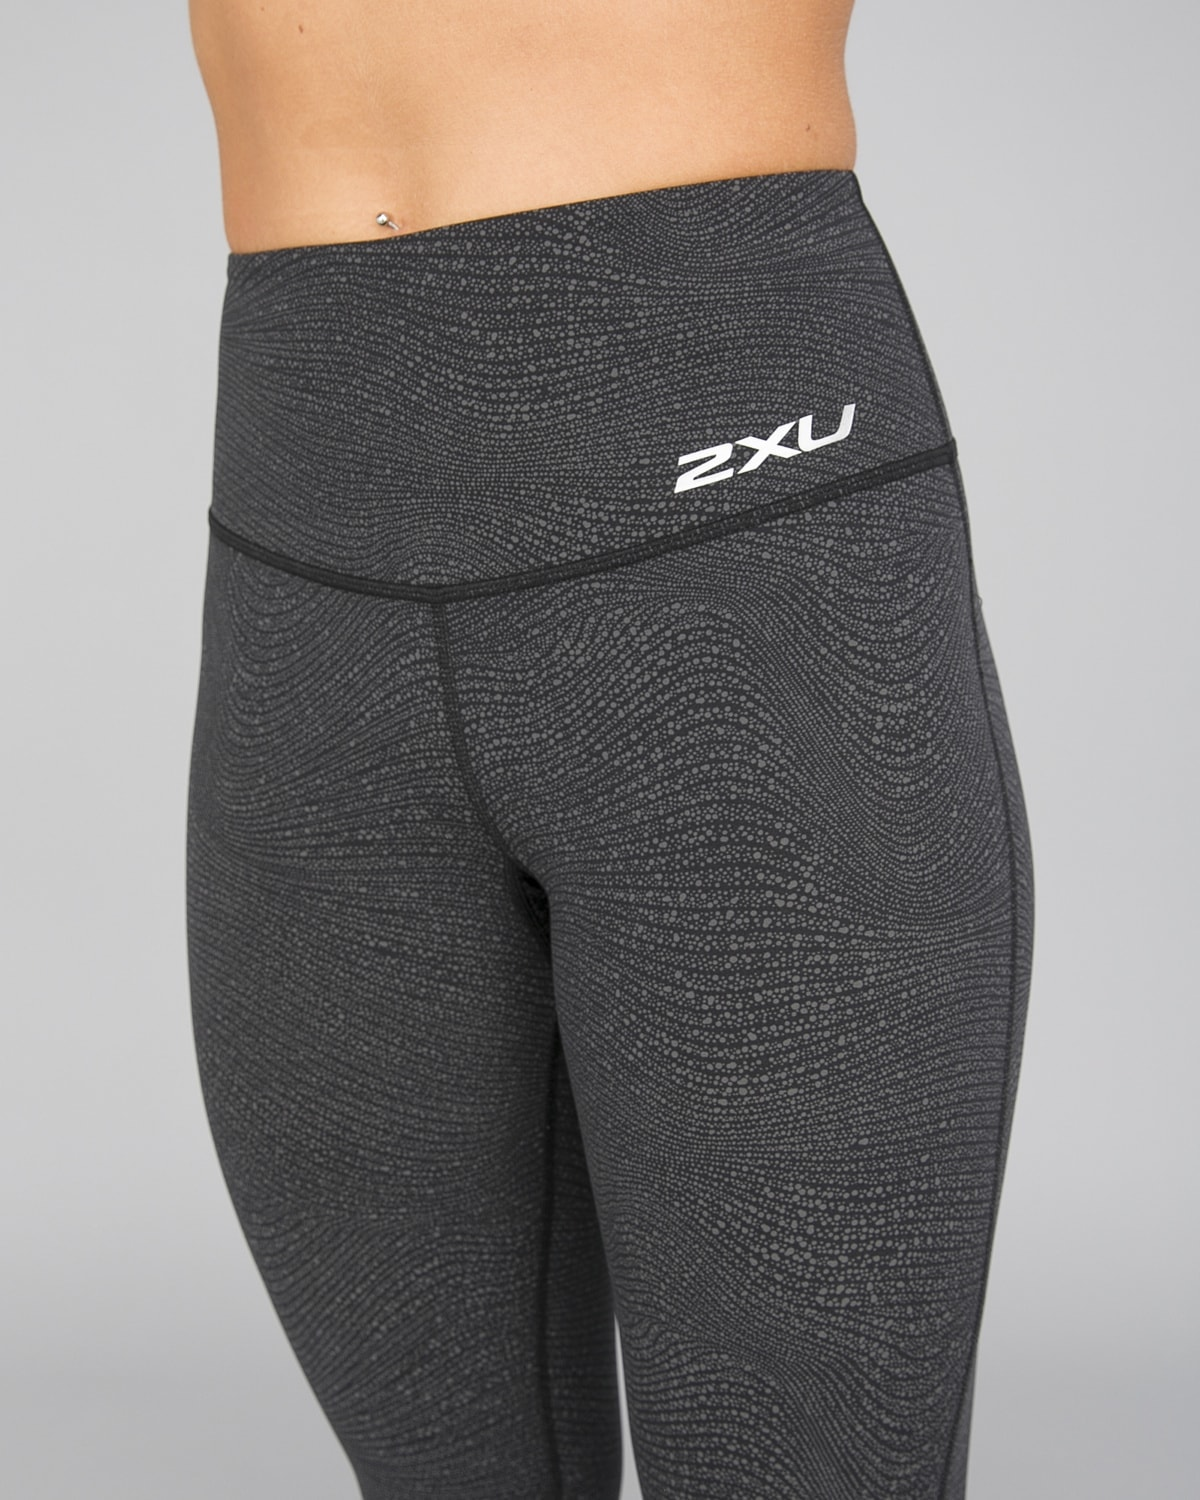 2XU Fitness Hi-Rise Comp Tights Women – Wave Spot Charcoal:Silver13